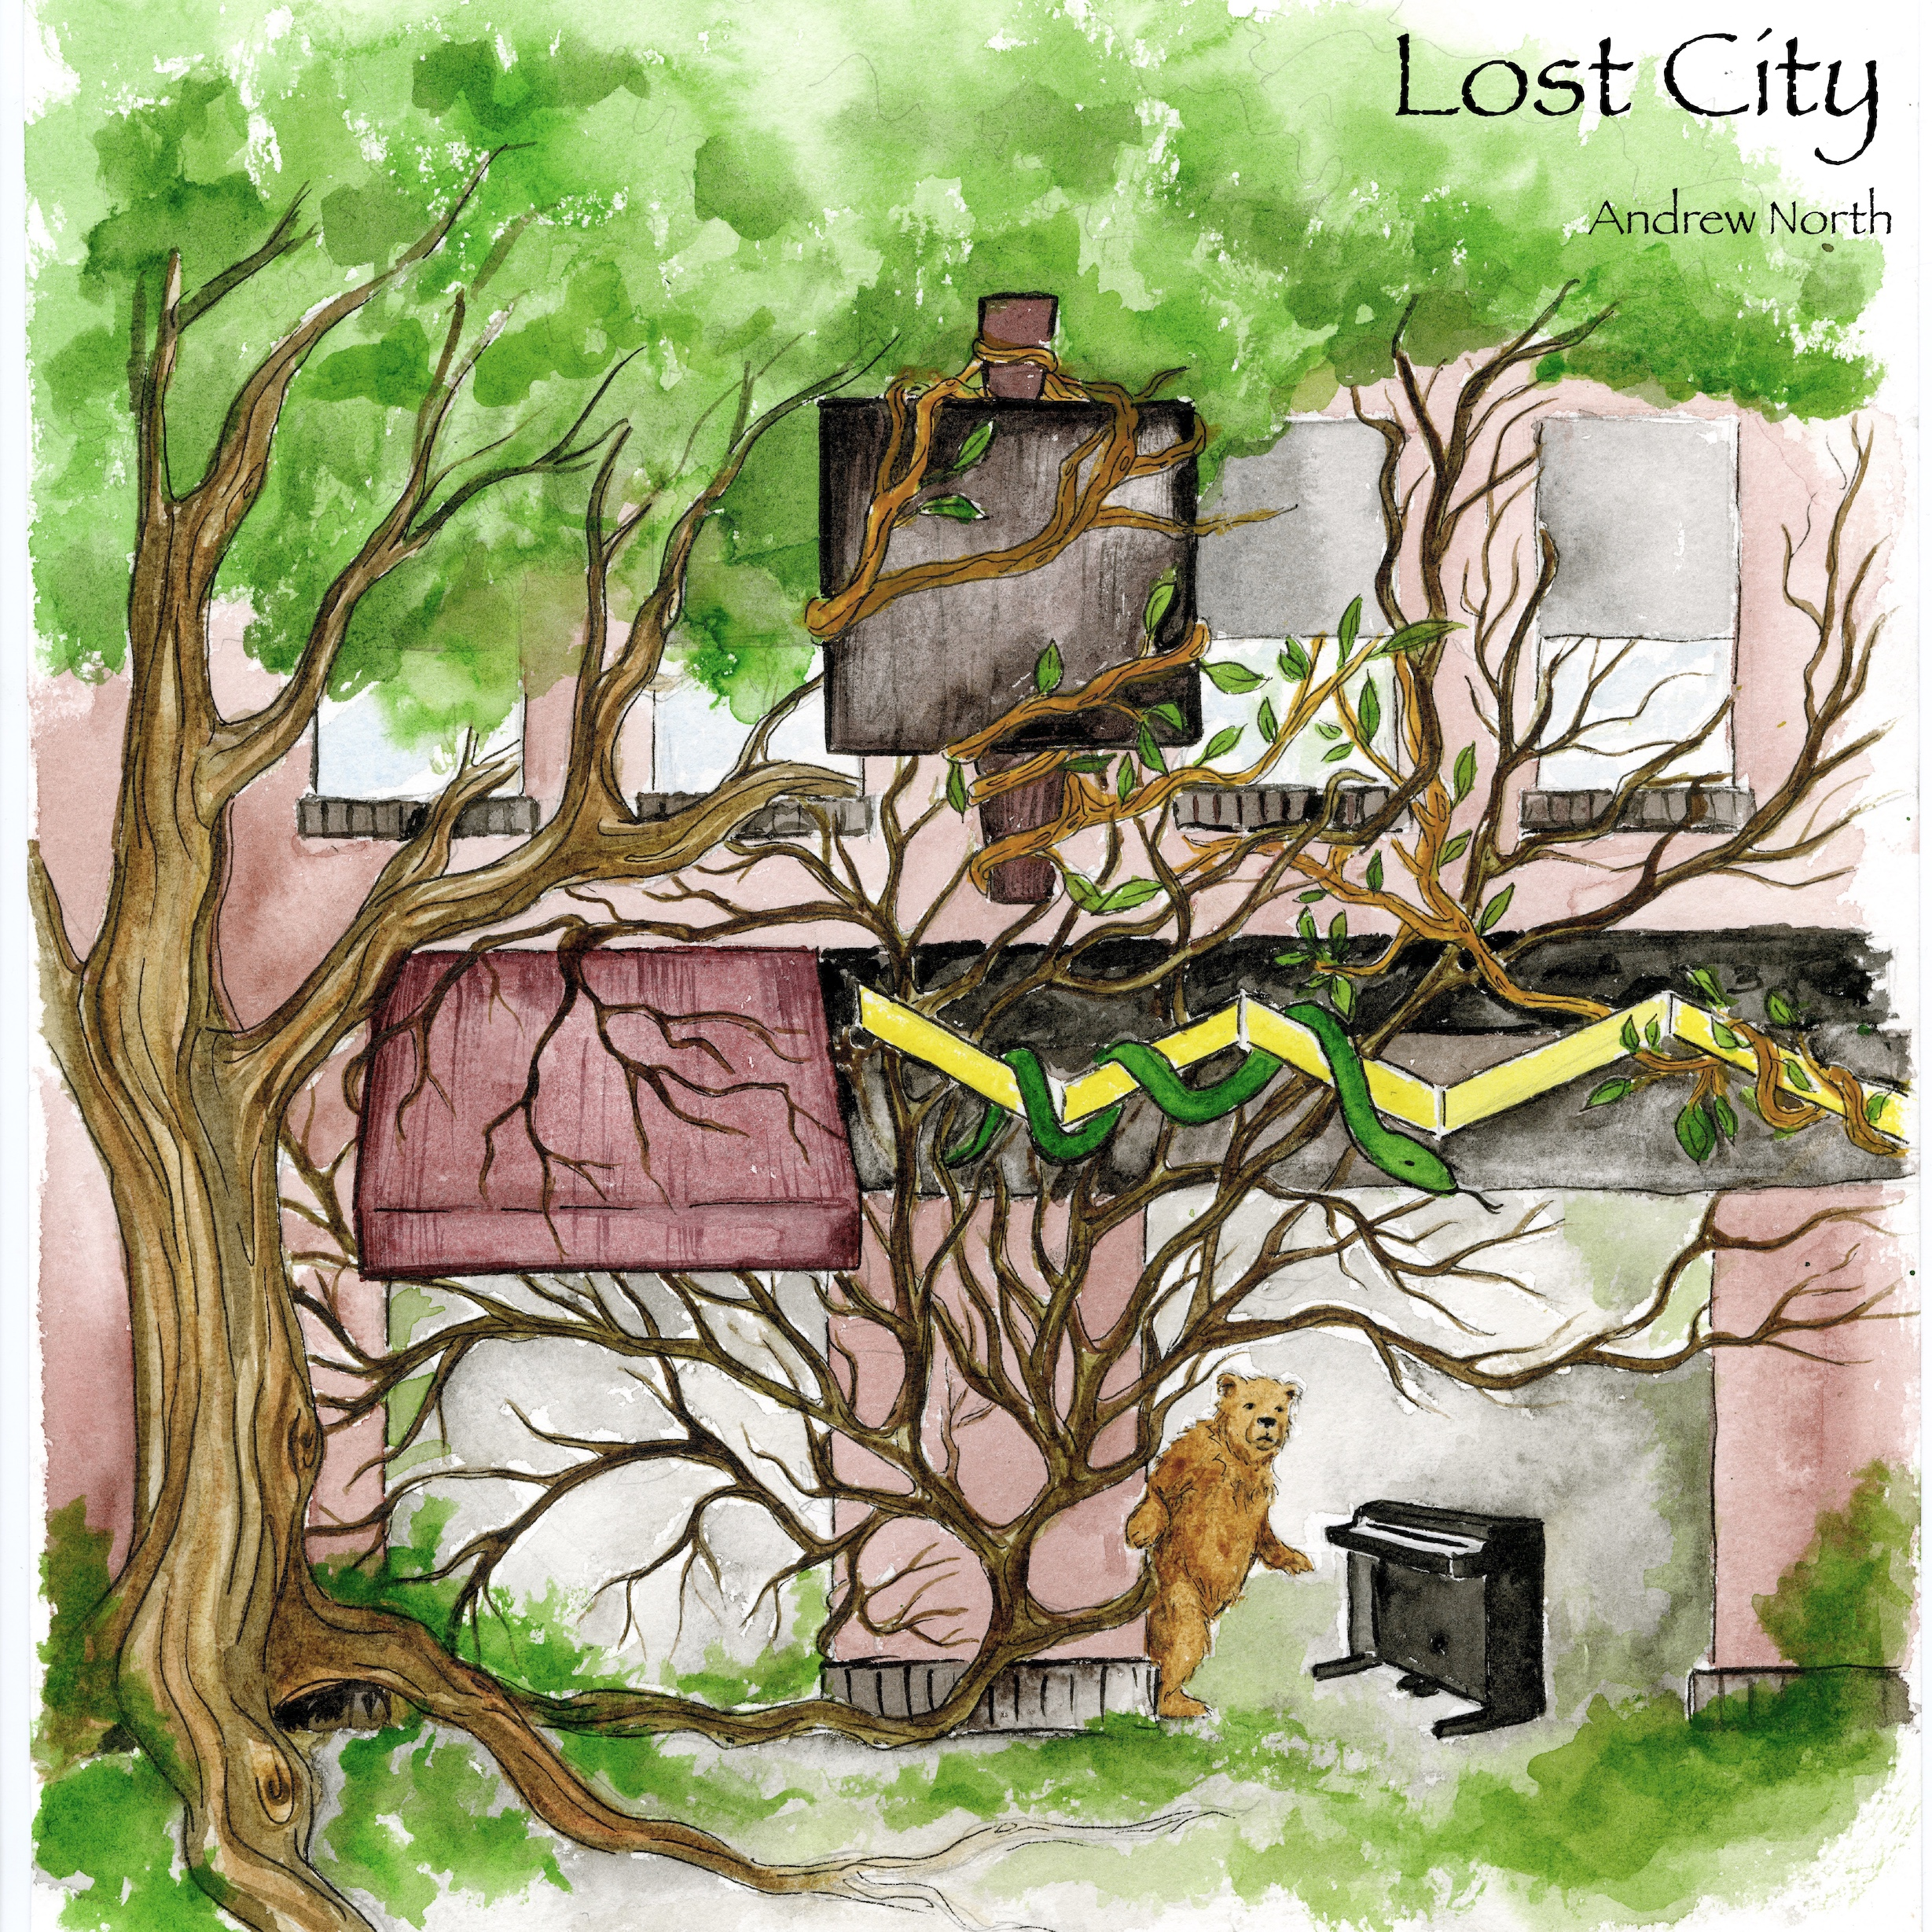 Lost City - Album Cover small.jpg